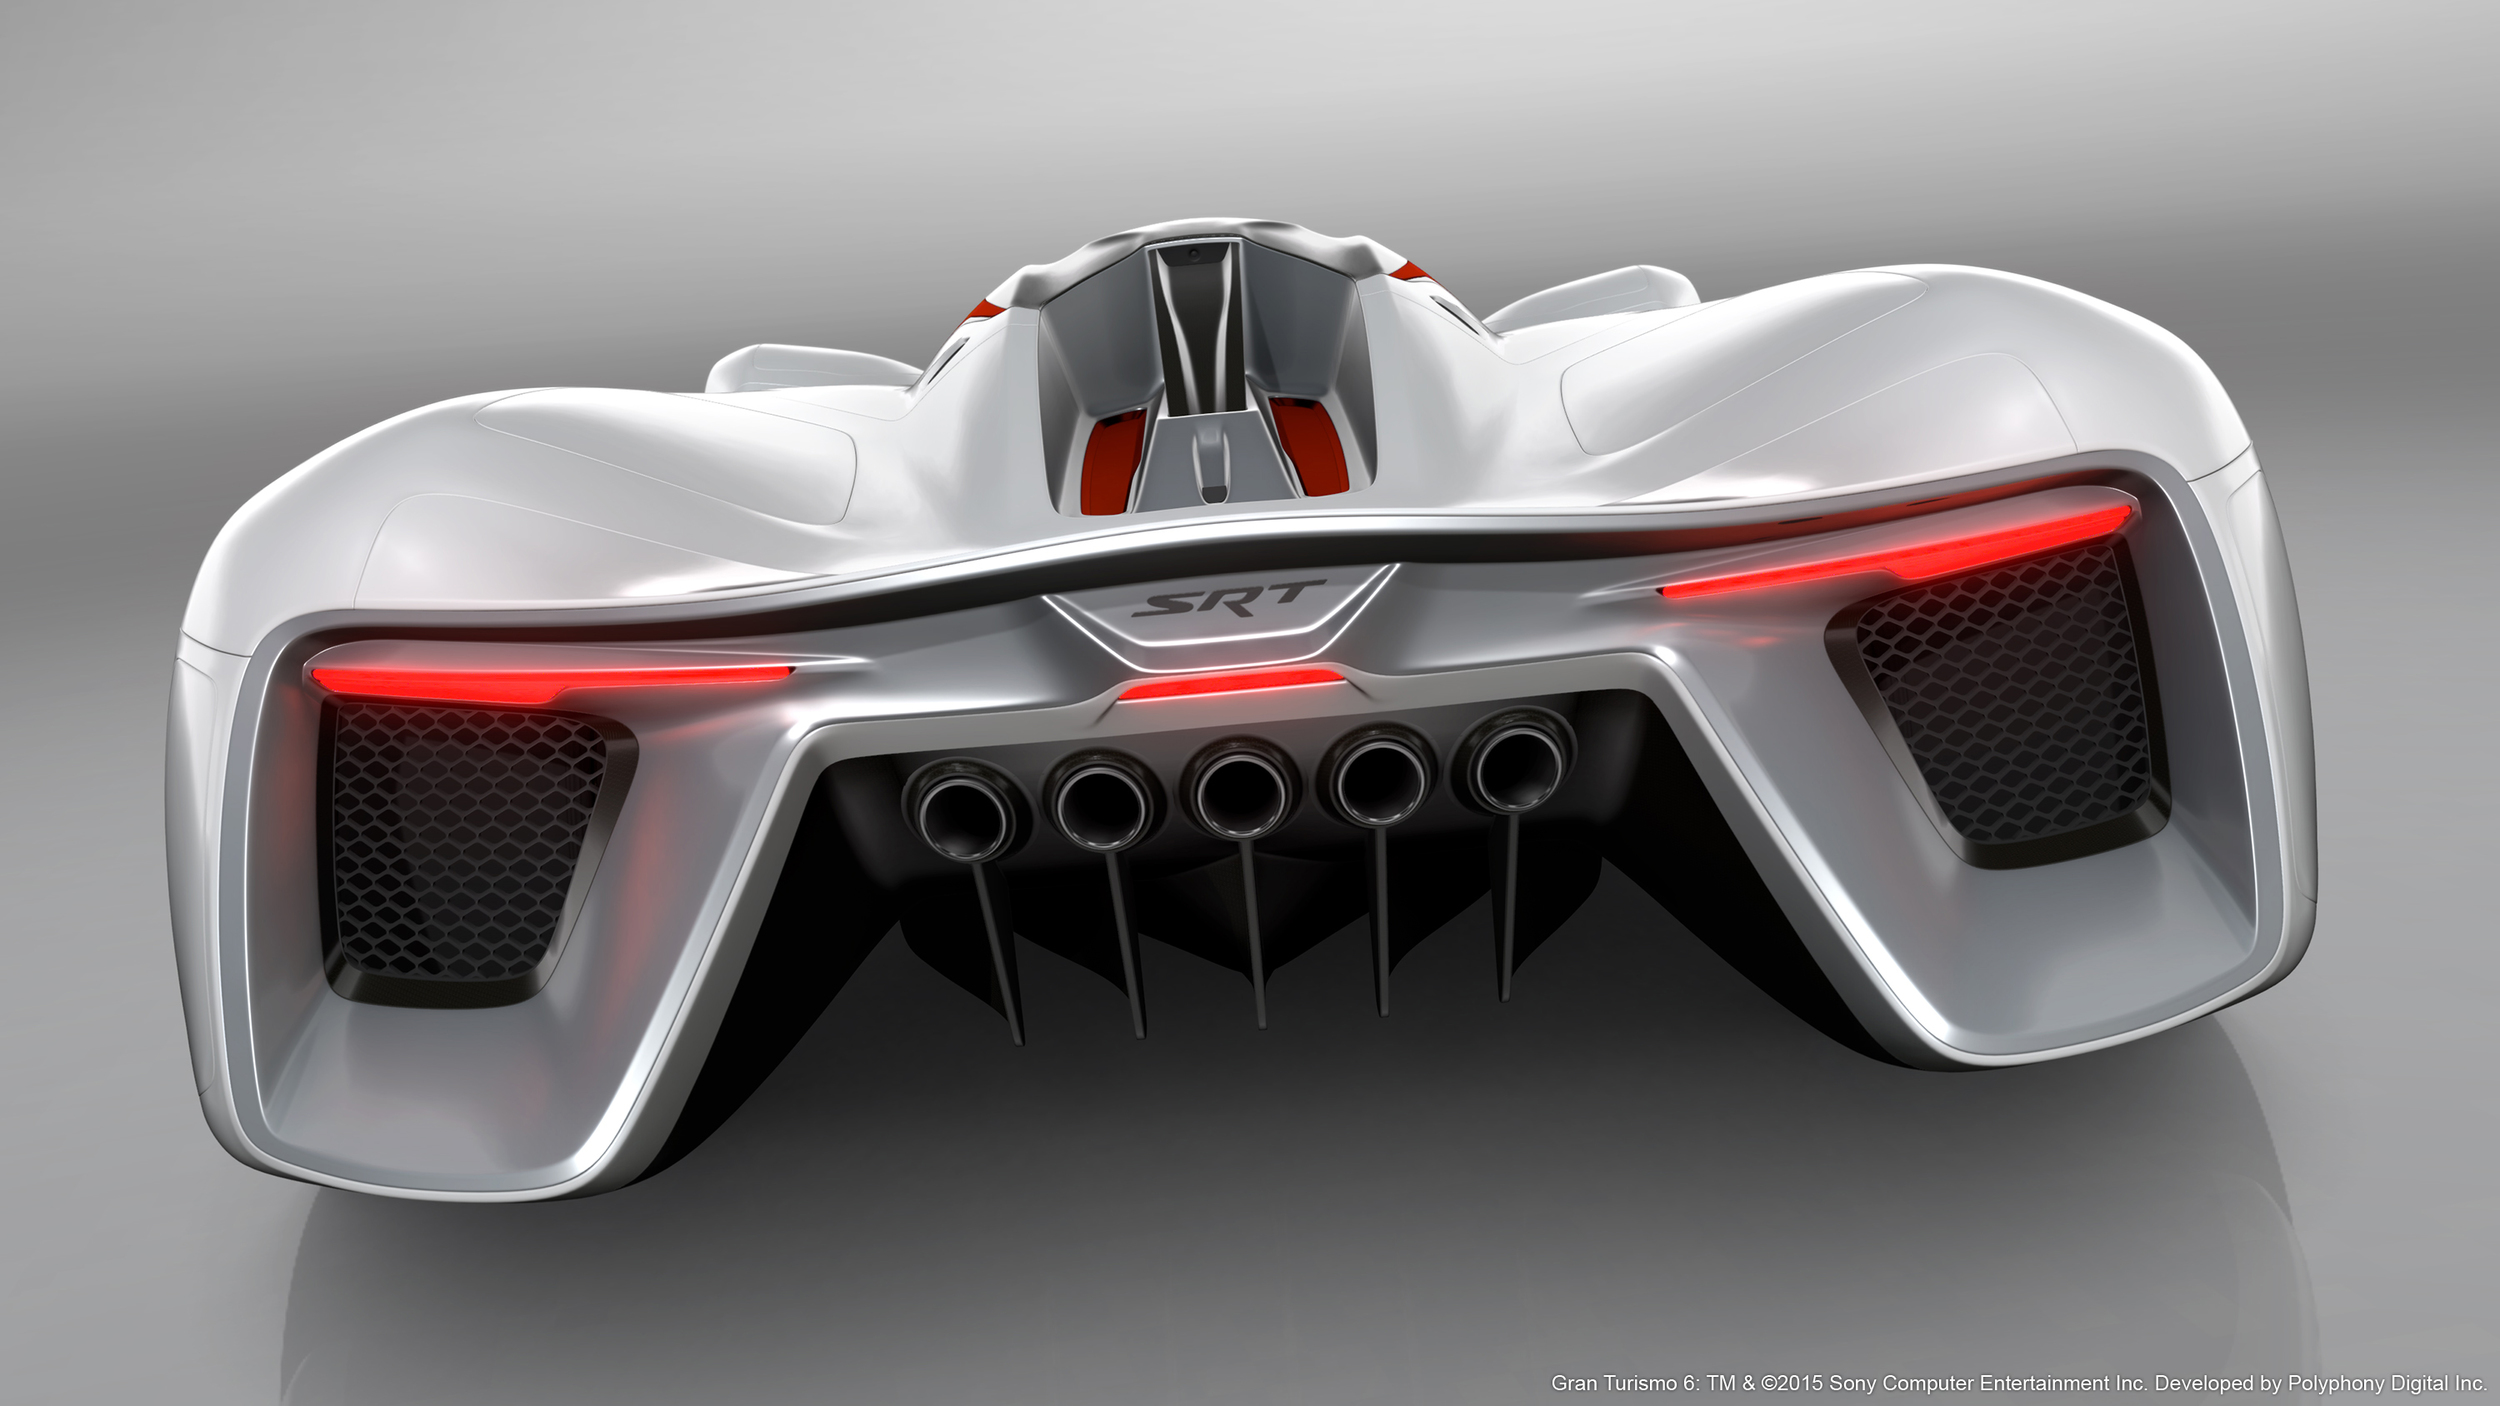 Srt Tomahawk Vision Gran Turismo Concept Looks Two Decades Into